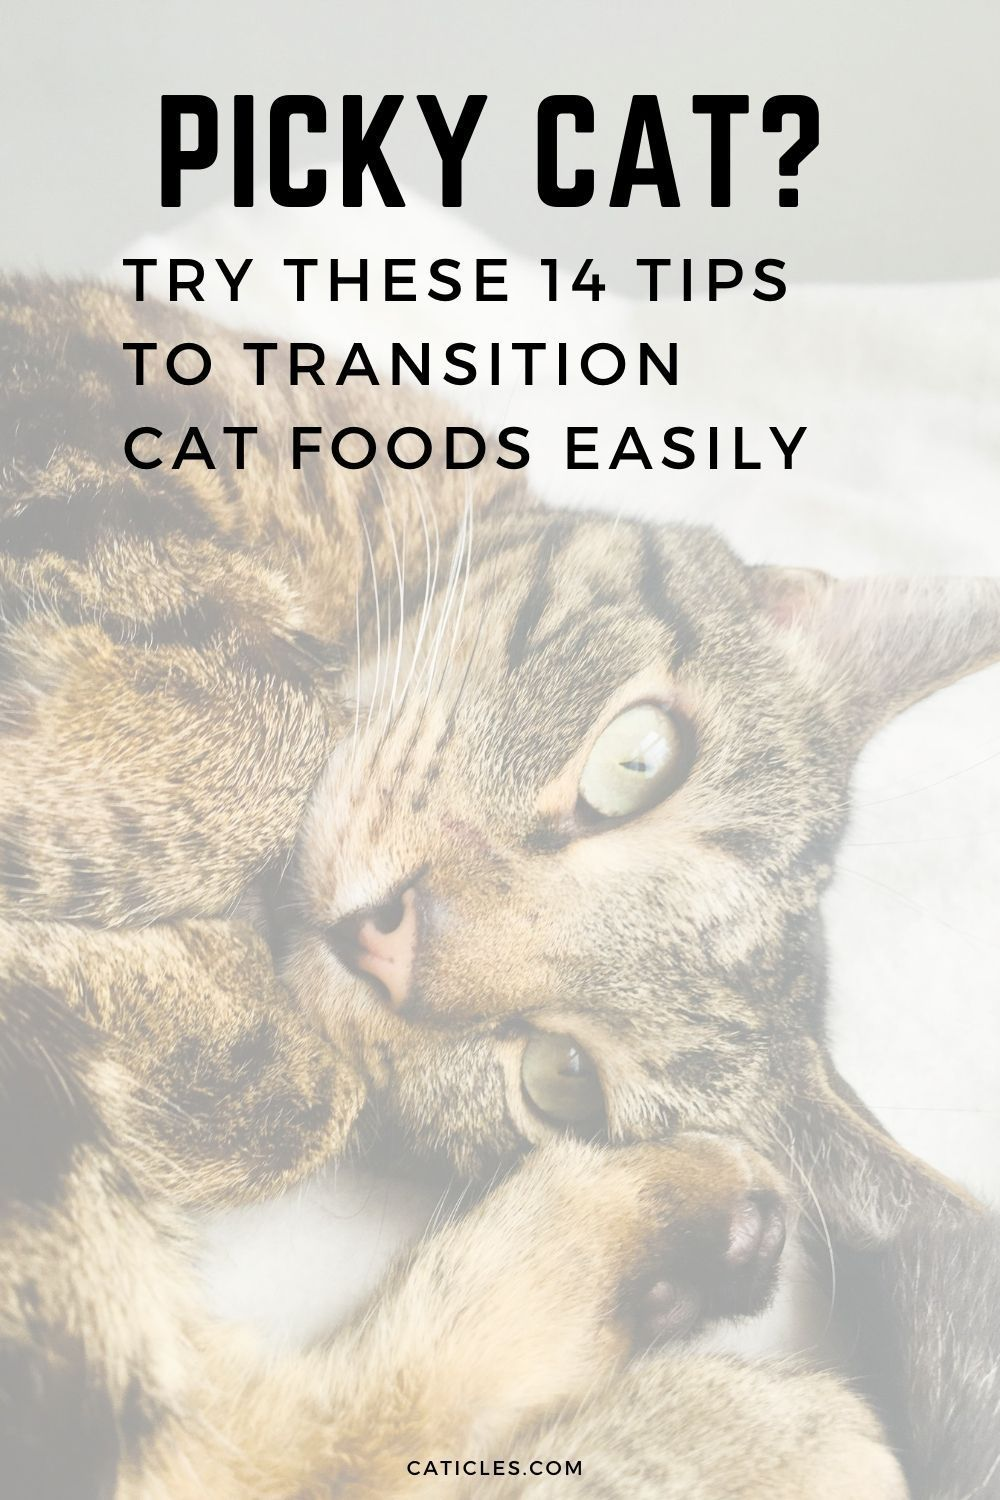 How To Transition Cat Food The Right Way Complete Guide Caticles In 2020 Cat Food Natural Cat Food Cat Nutrition